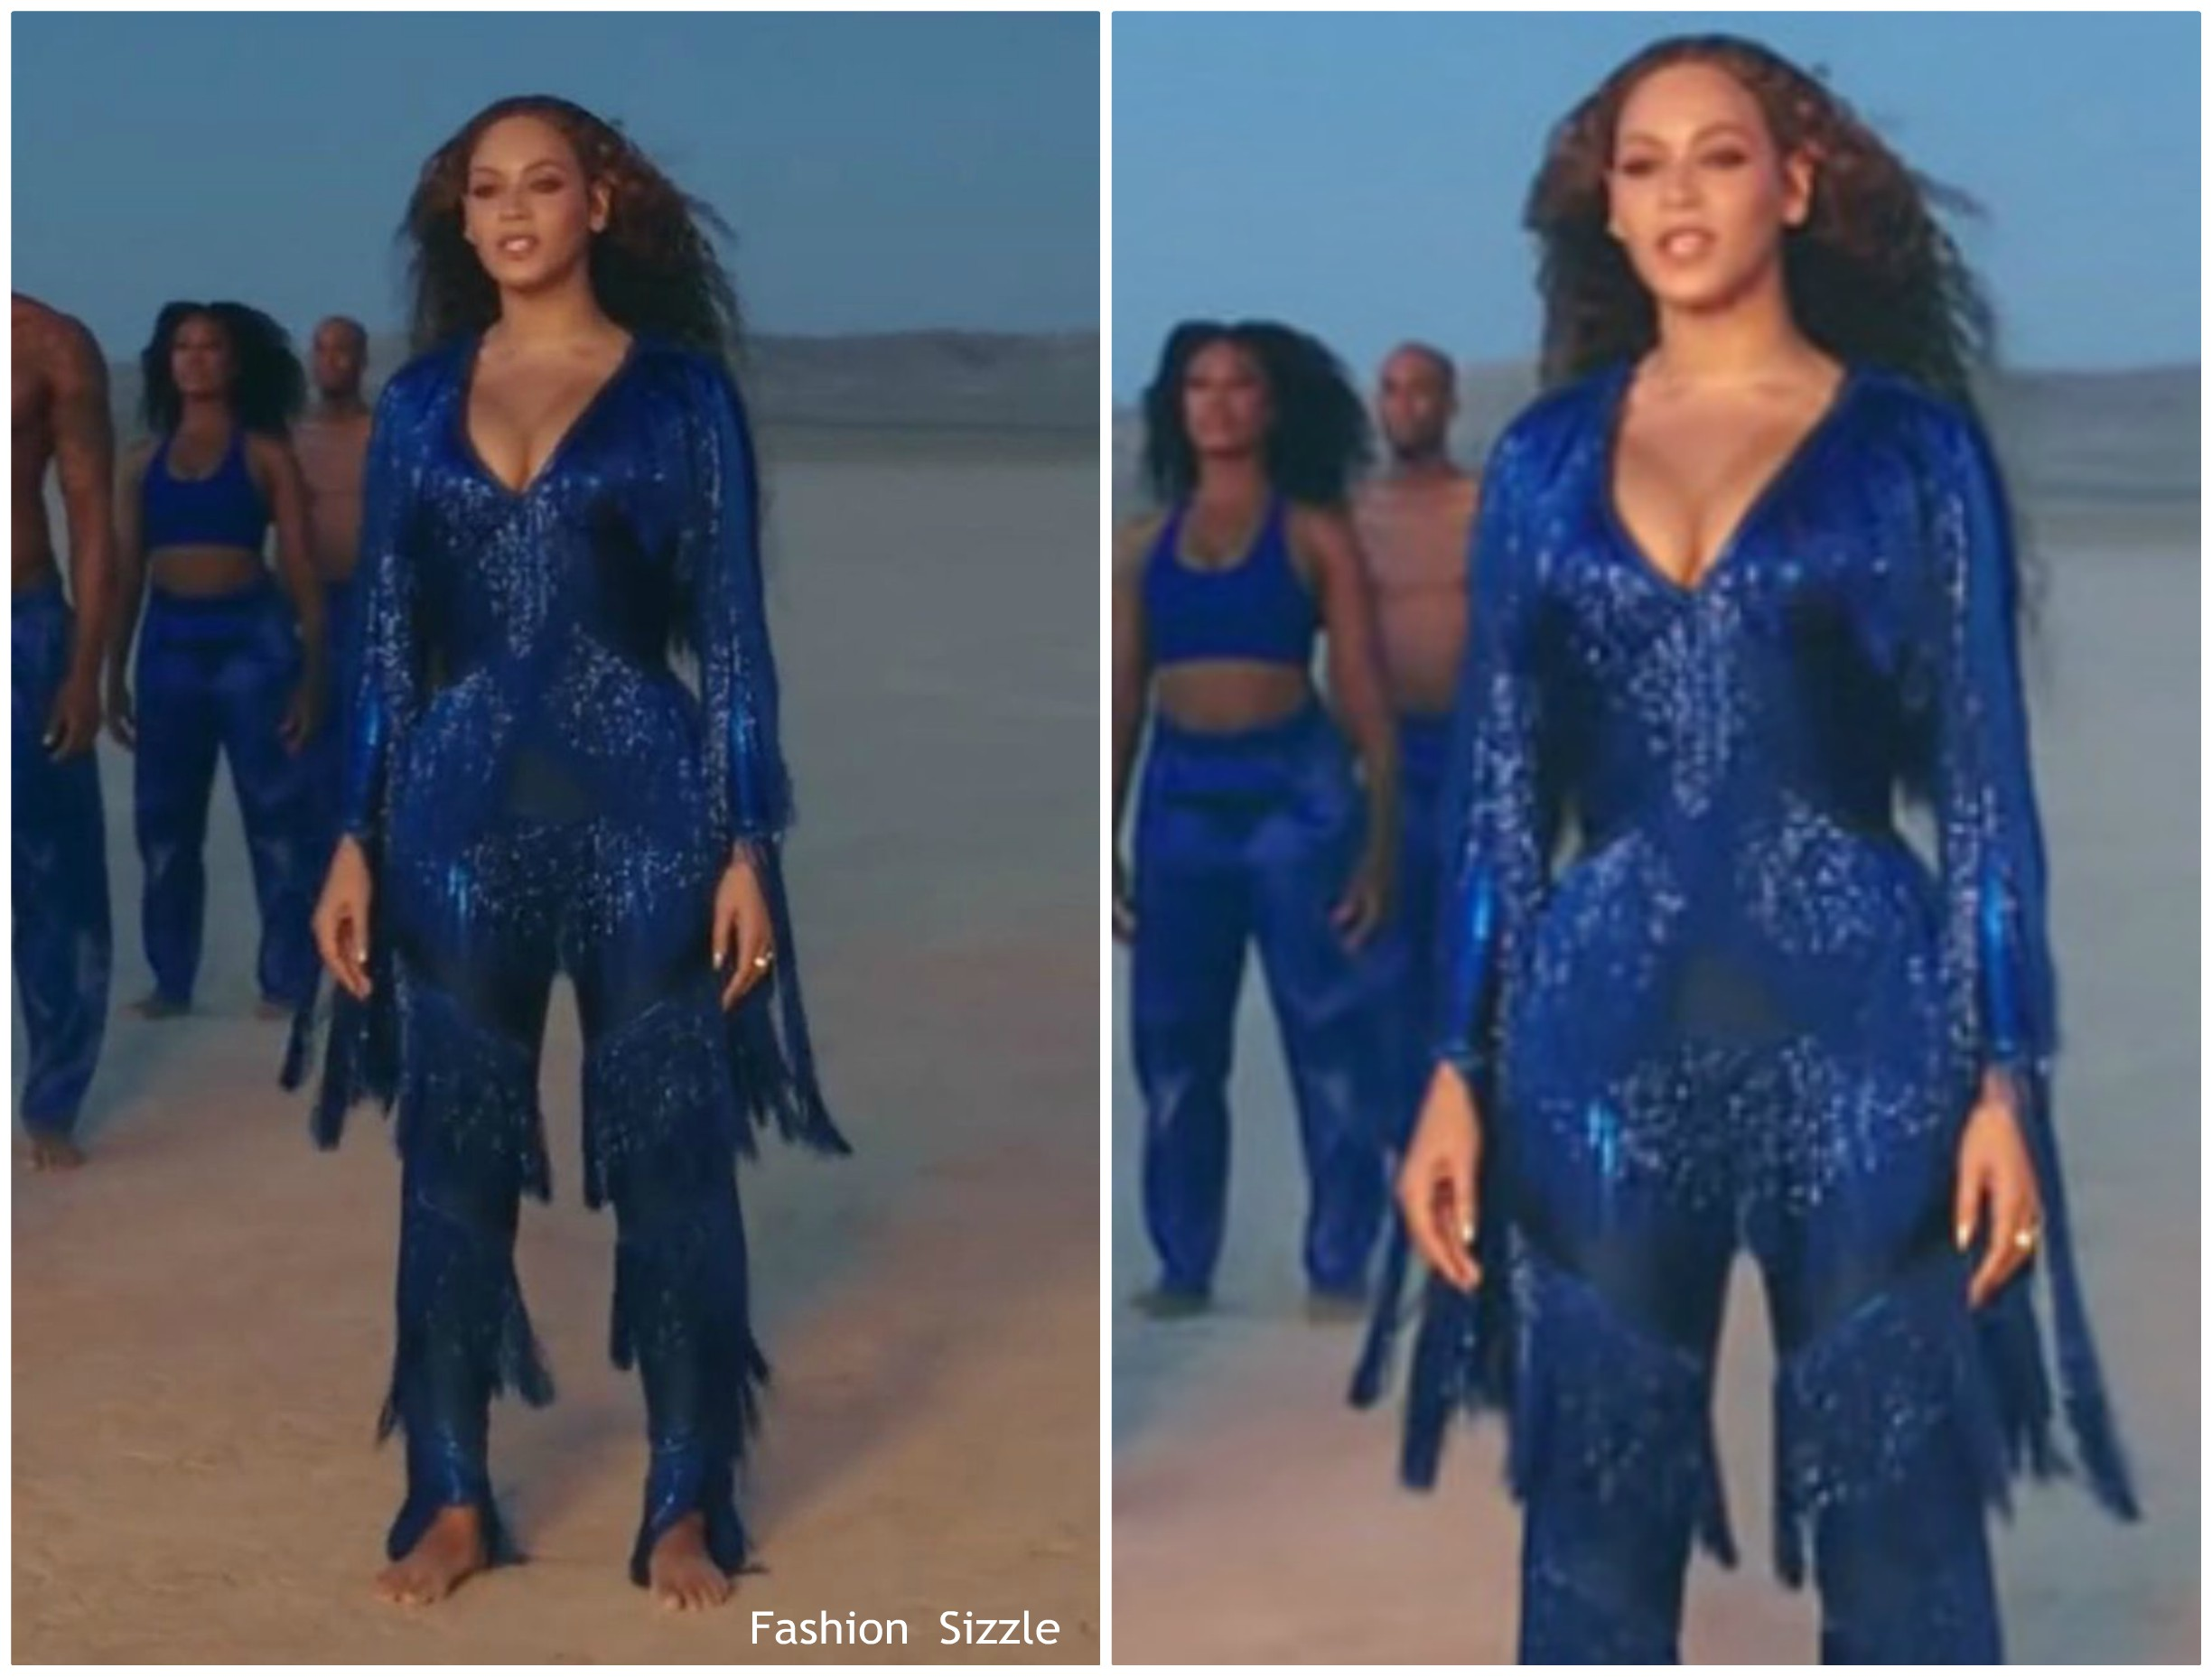 beyonce-knowles-in-laurel-dewitt-jumpsuit-for-spirit-music-video